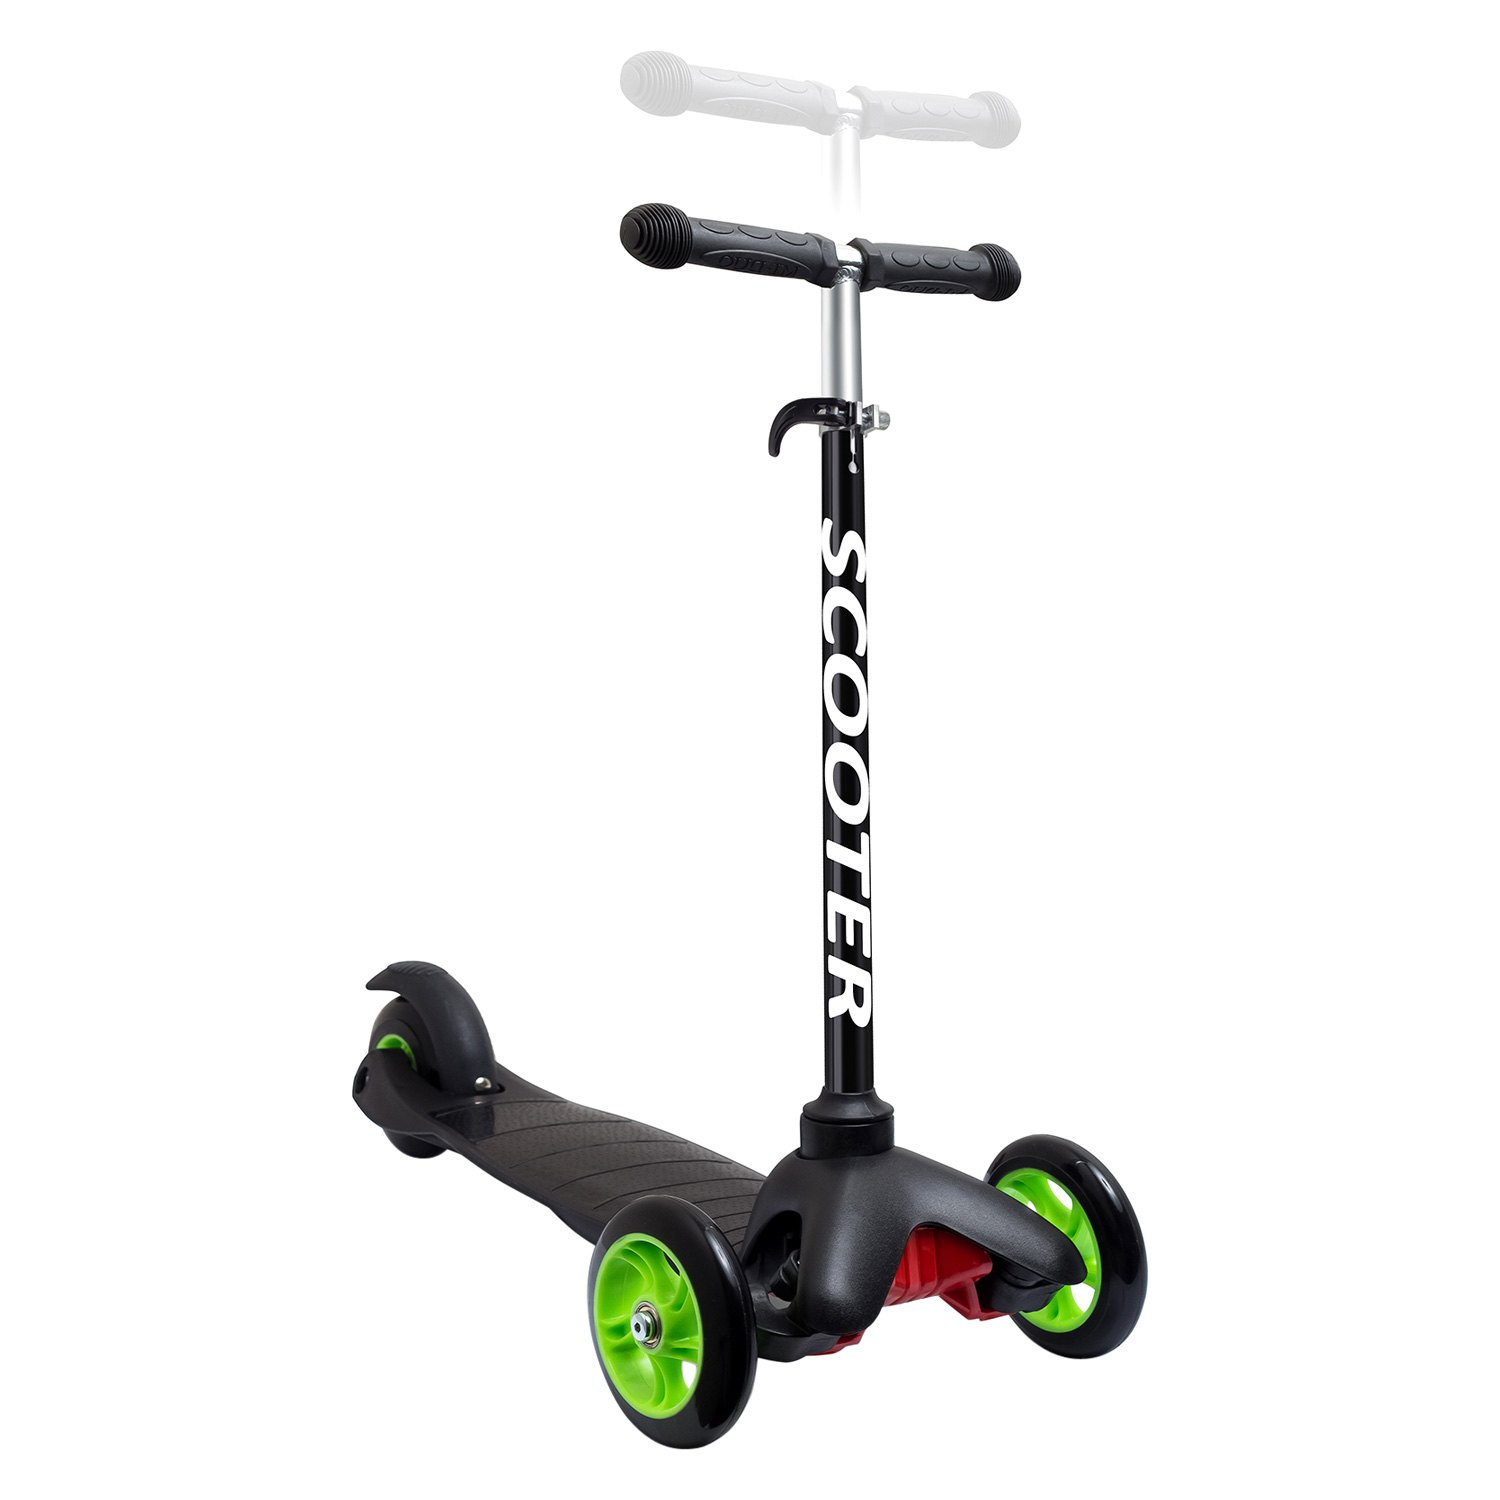 Oxgord sctr 01 bk kids scooter deluxe 3 wheel glider for Garage scooter 95